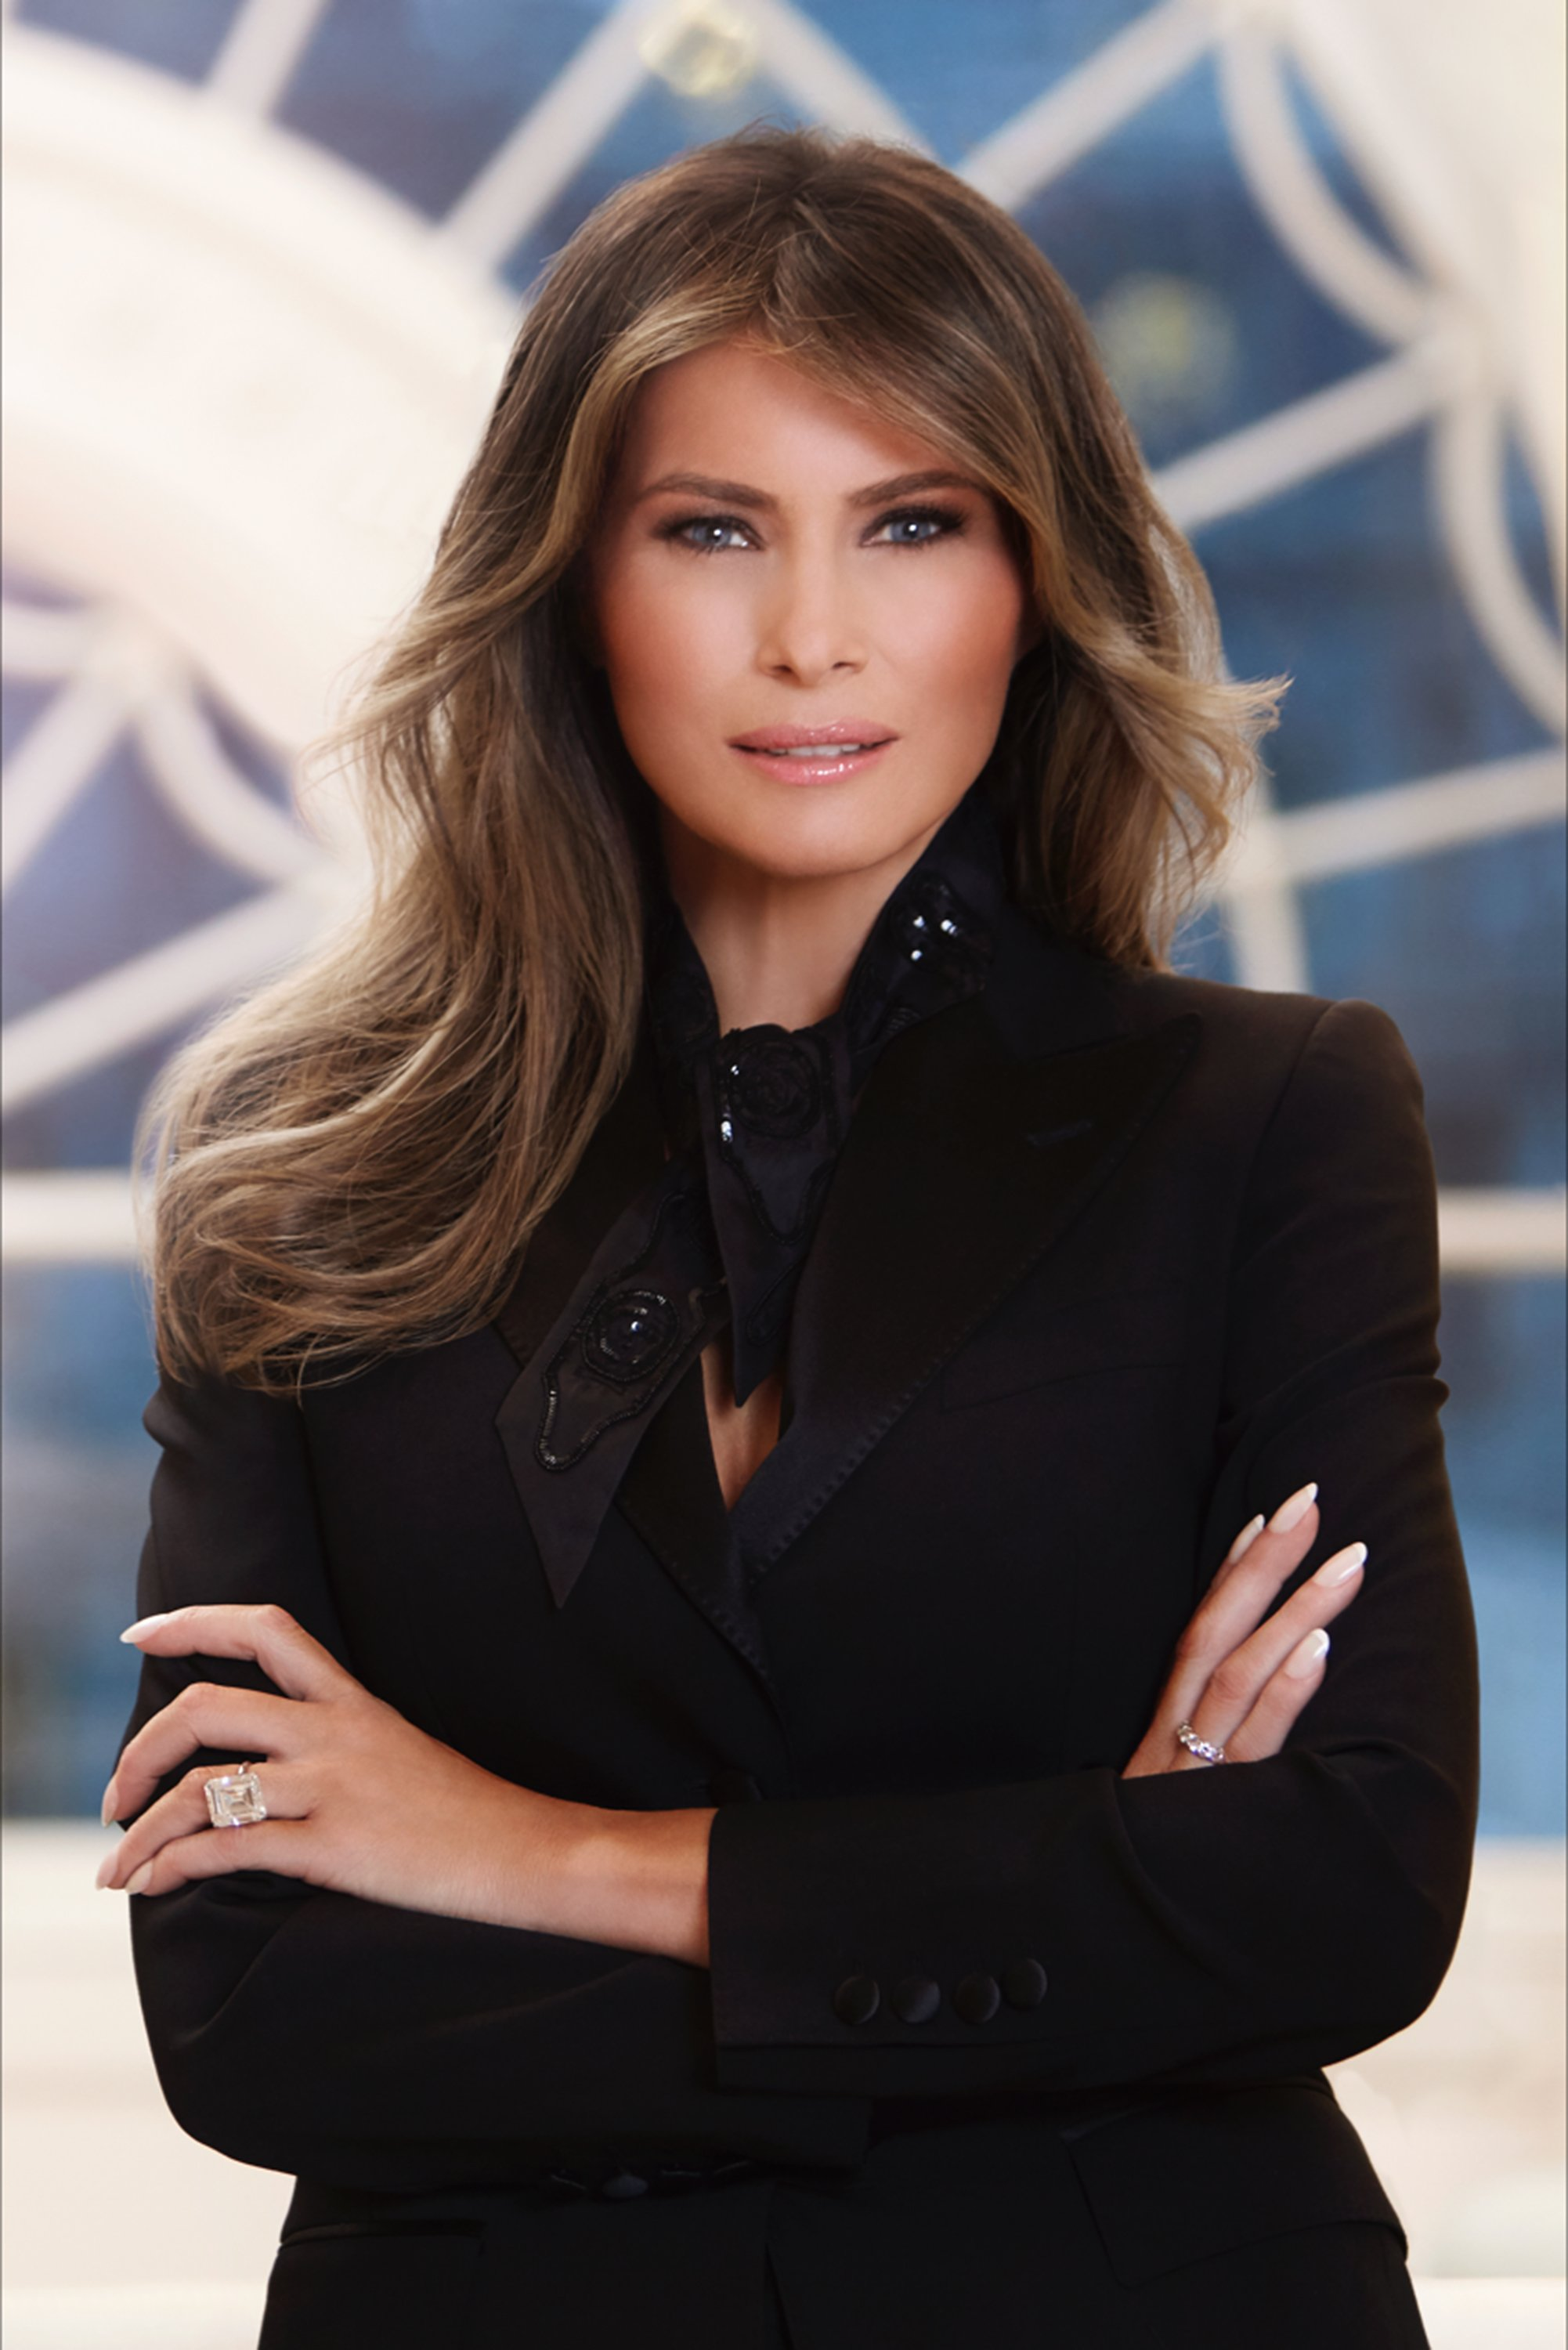 Melania Trump takes a portrait in the White House in Washington, DC in April 2017 | Photo: Getty Images